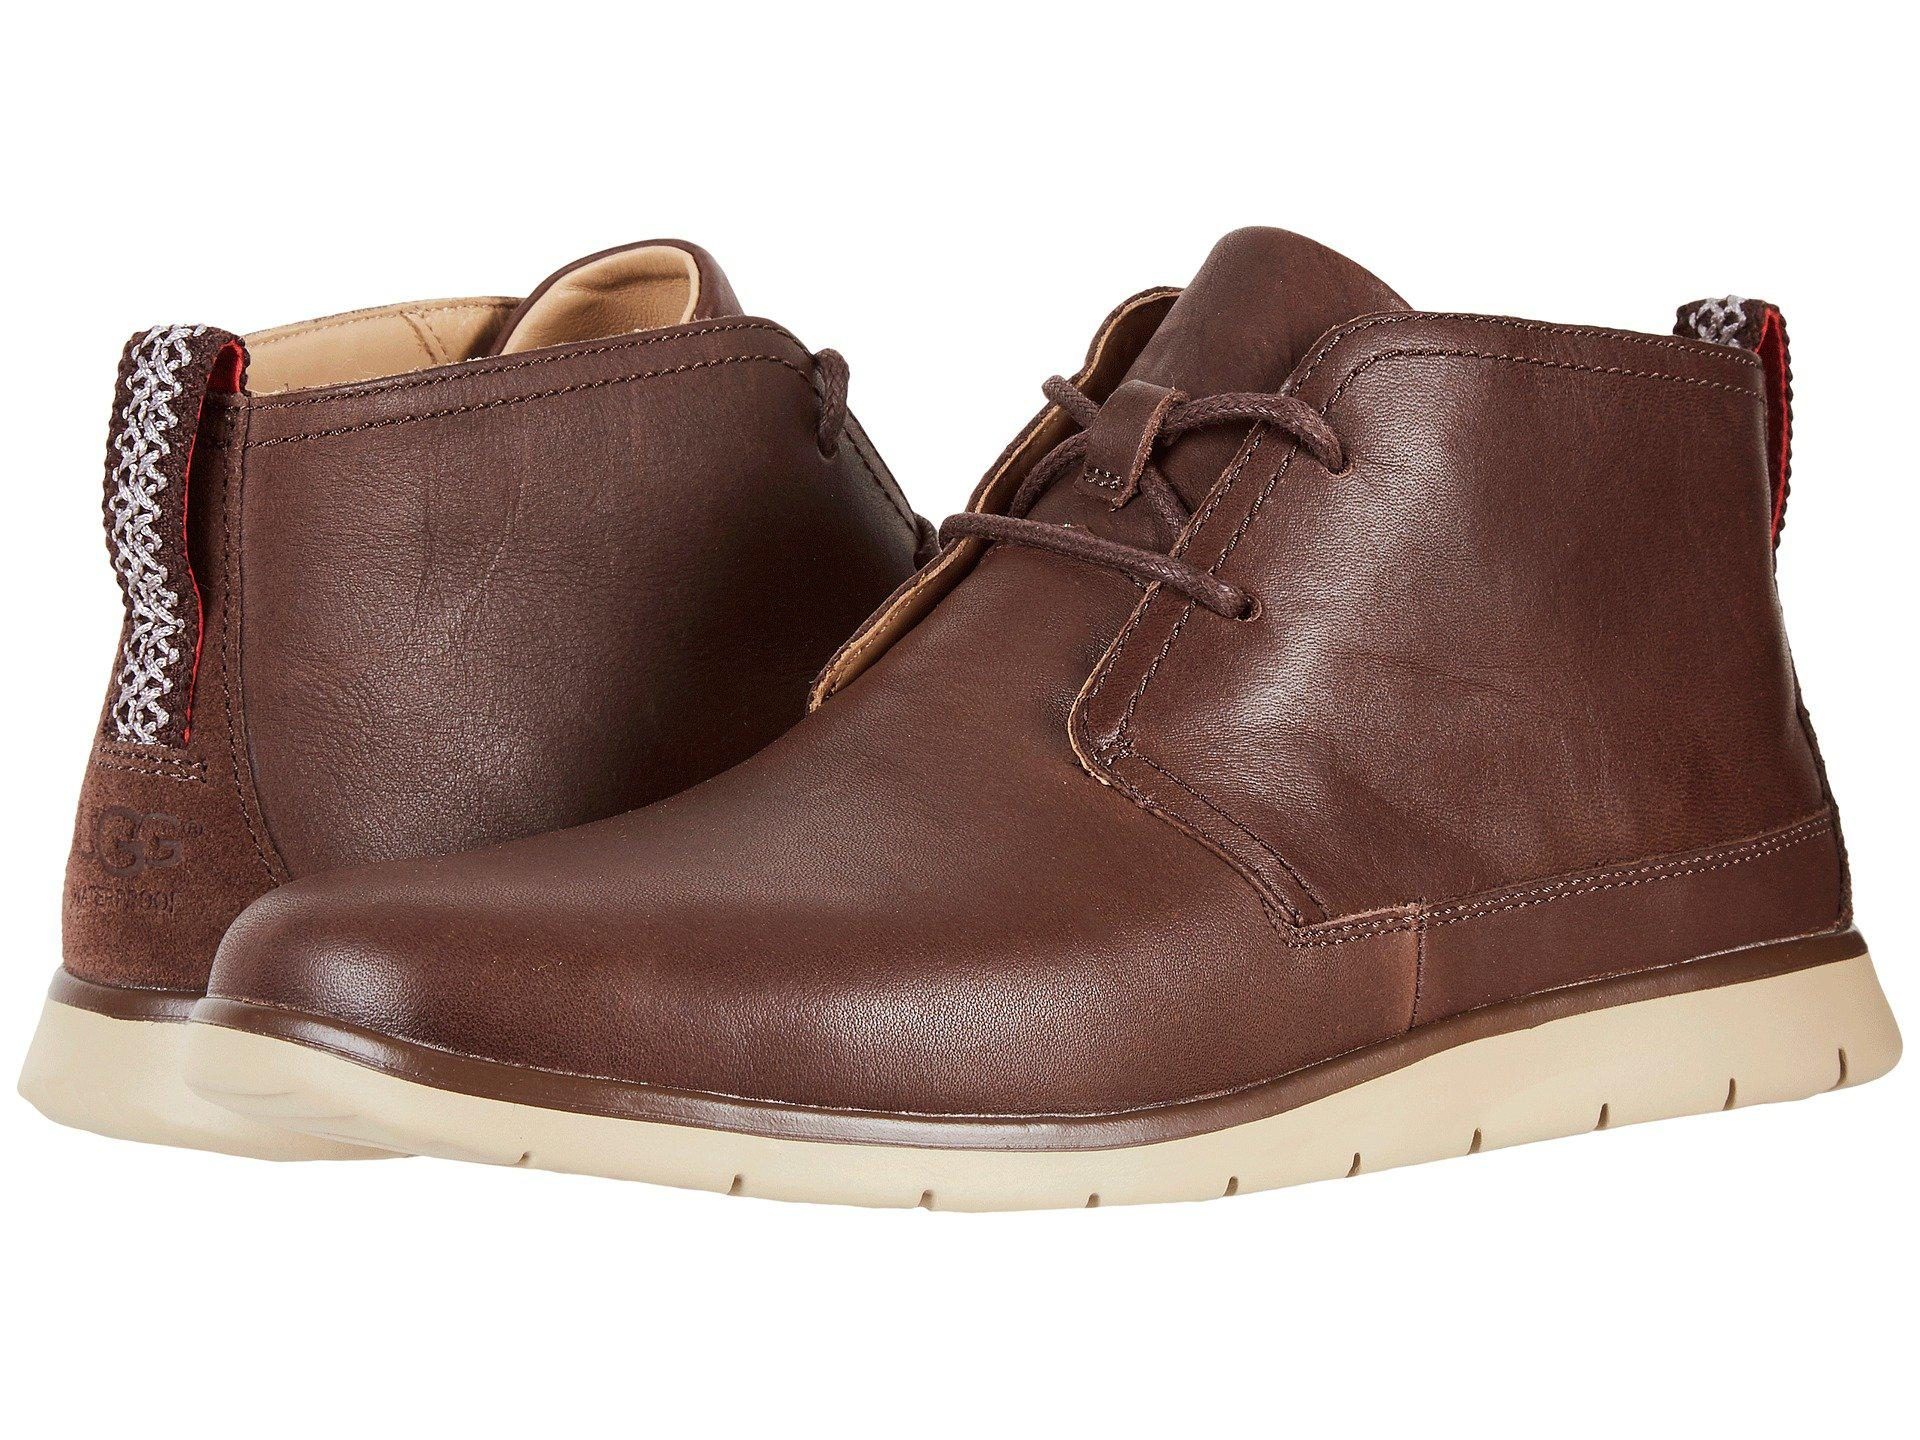 Lyst Ugg Chaussures Freamon Homme Waterproof Lyst (grizzly) Chaussures Hommes en Marron pour Homme 4114d03 - vendingmatic.info